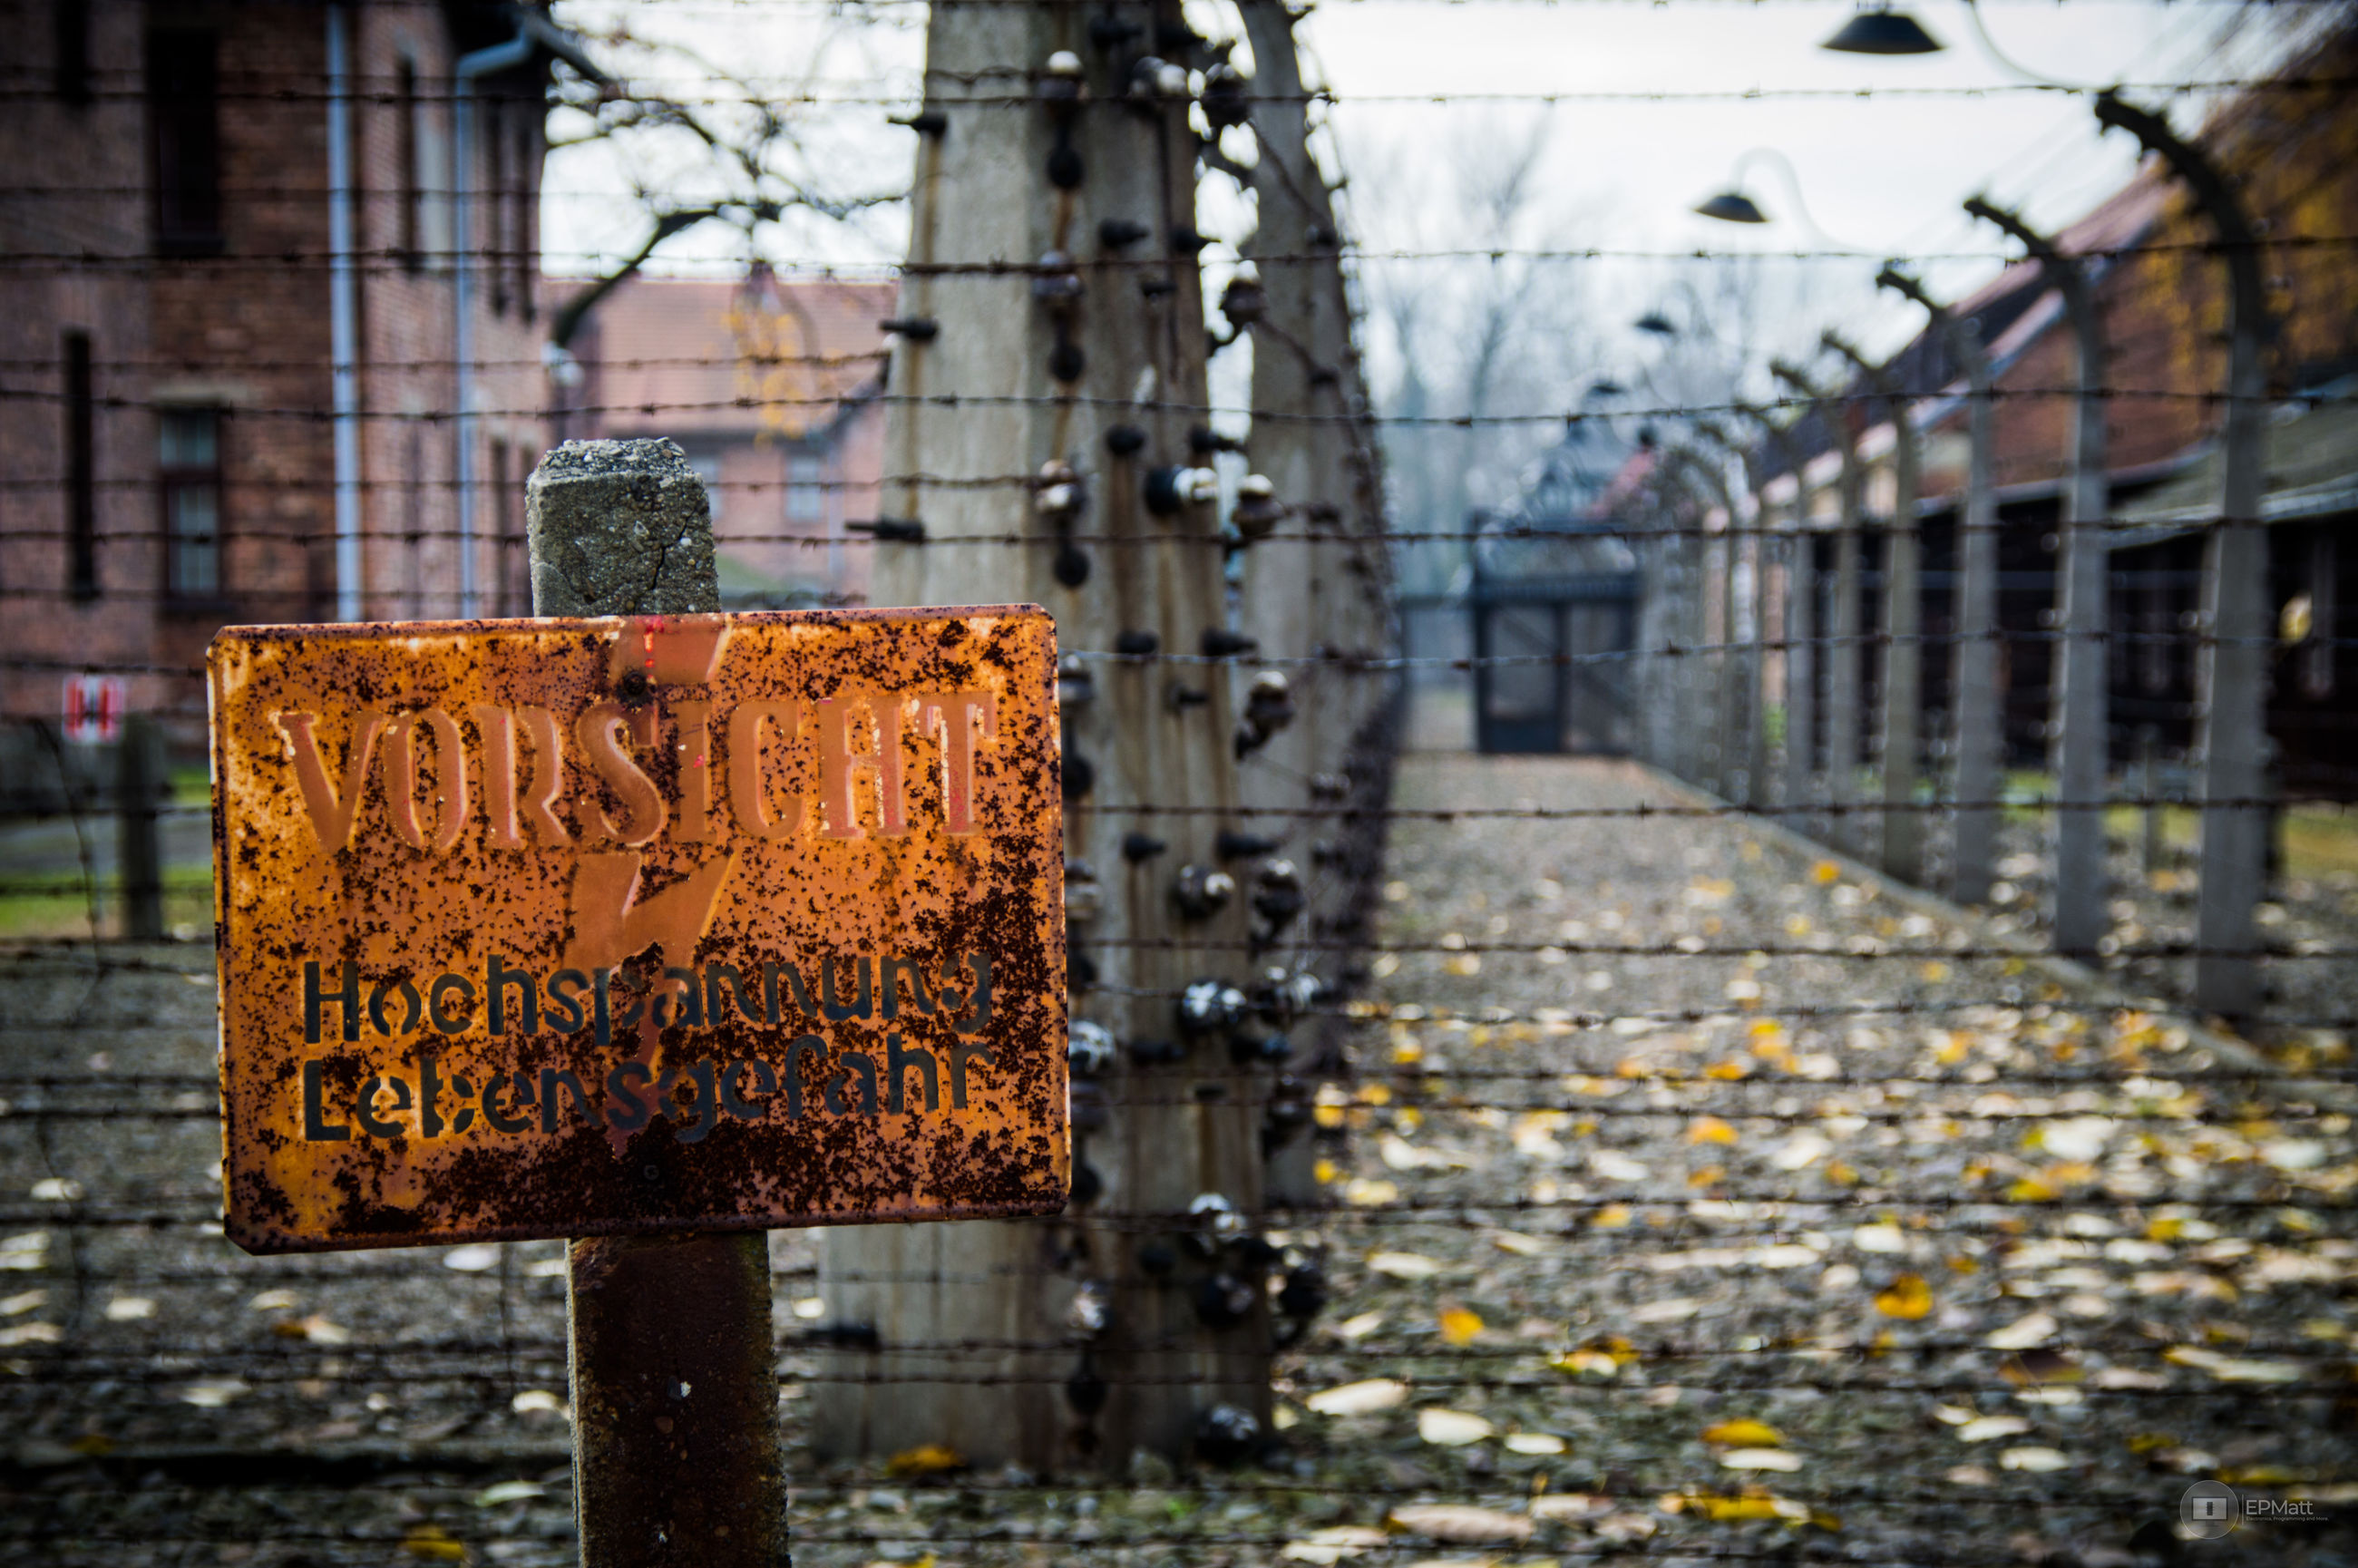 focus on foreground, architecture, day, text, no people, building exterior, built structure, city, communication, metal, outdoors, close-up, nature, street, building, boundary, fence, barrier, rusty